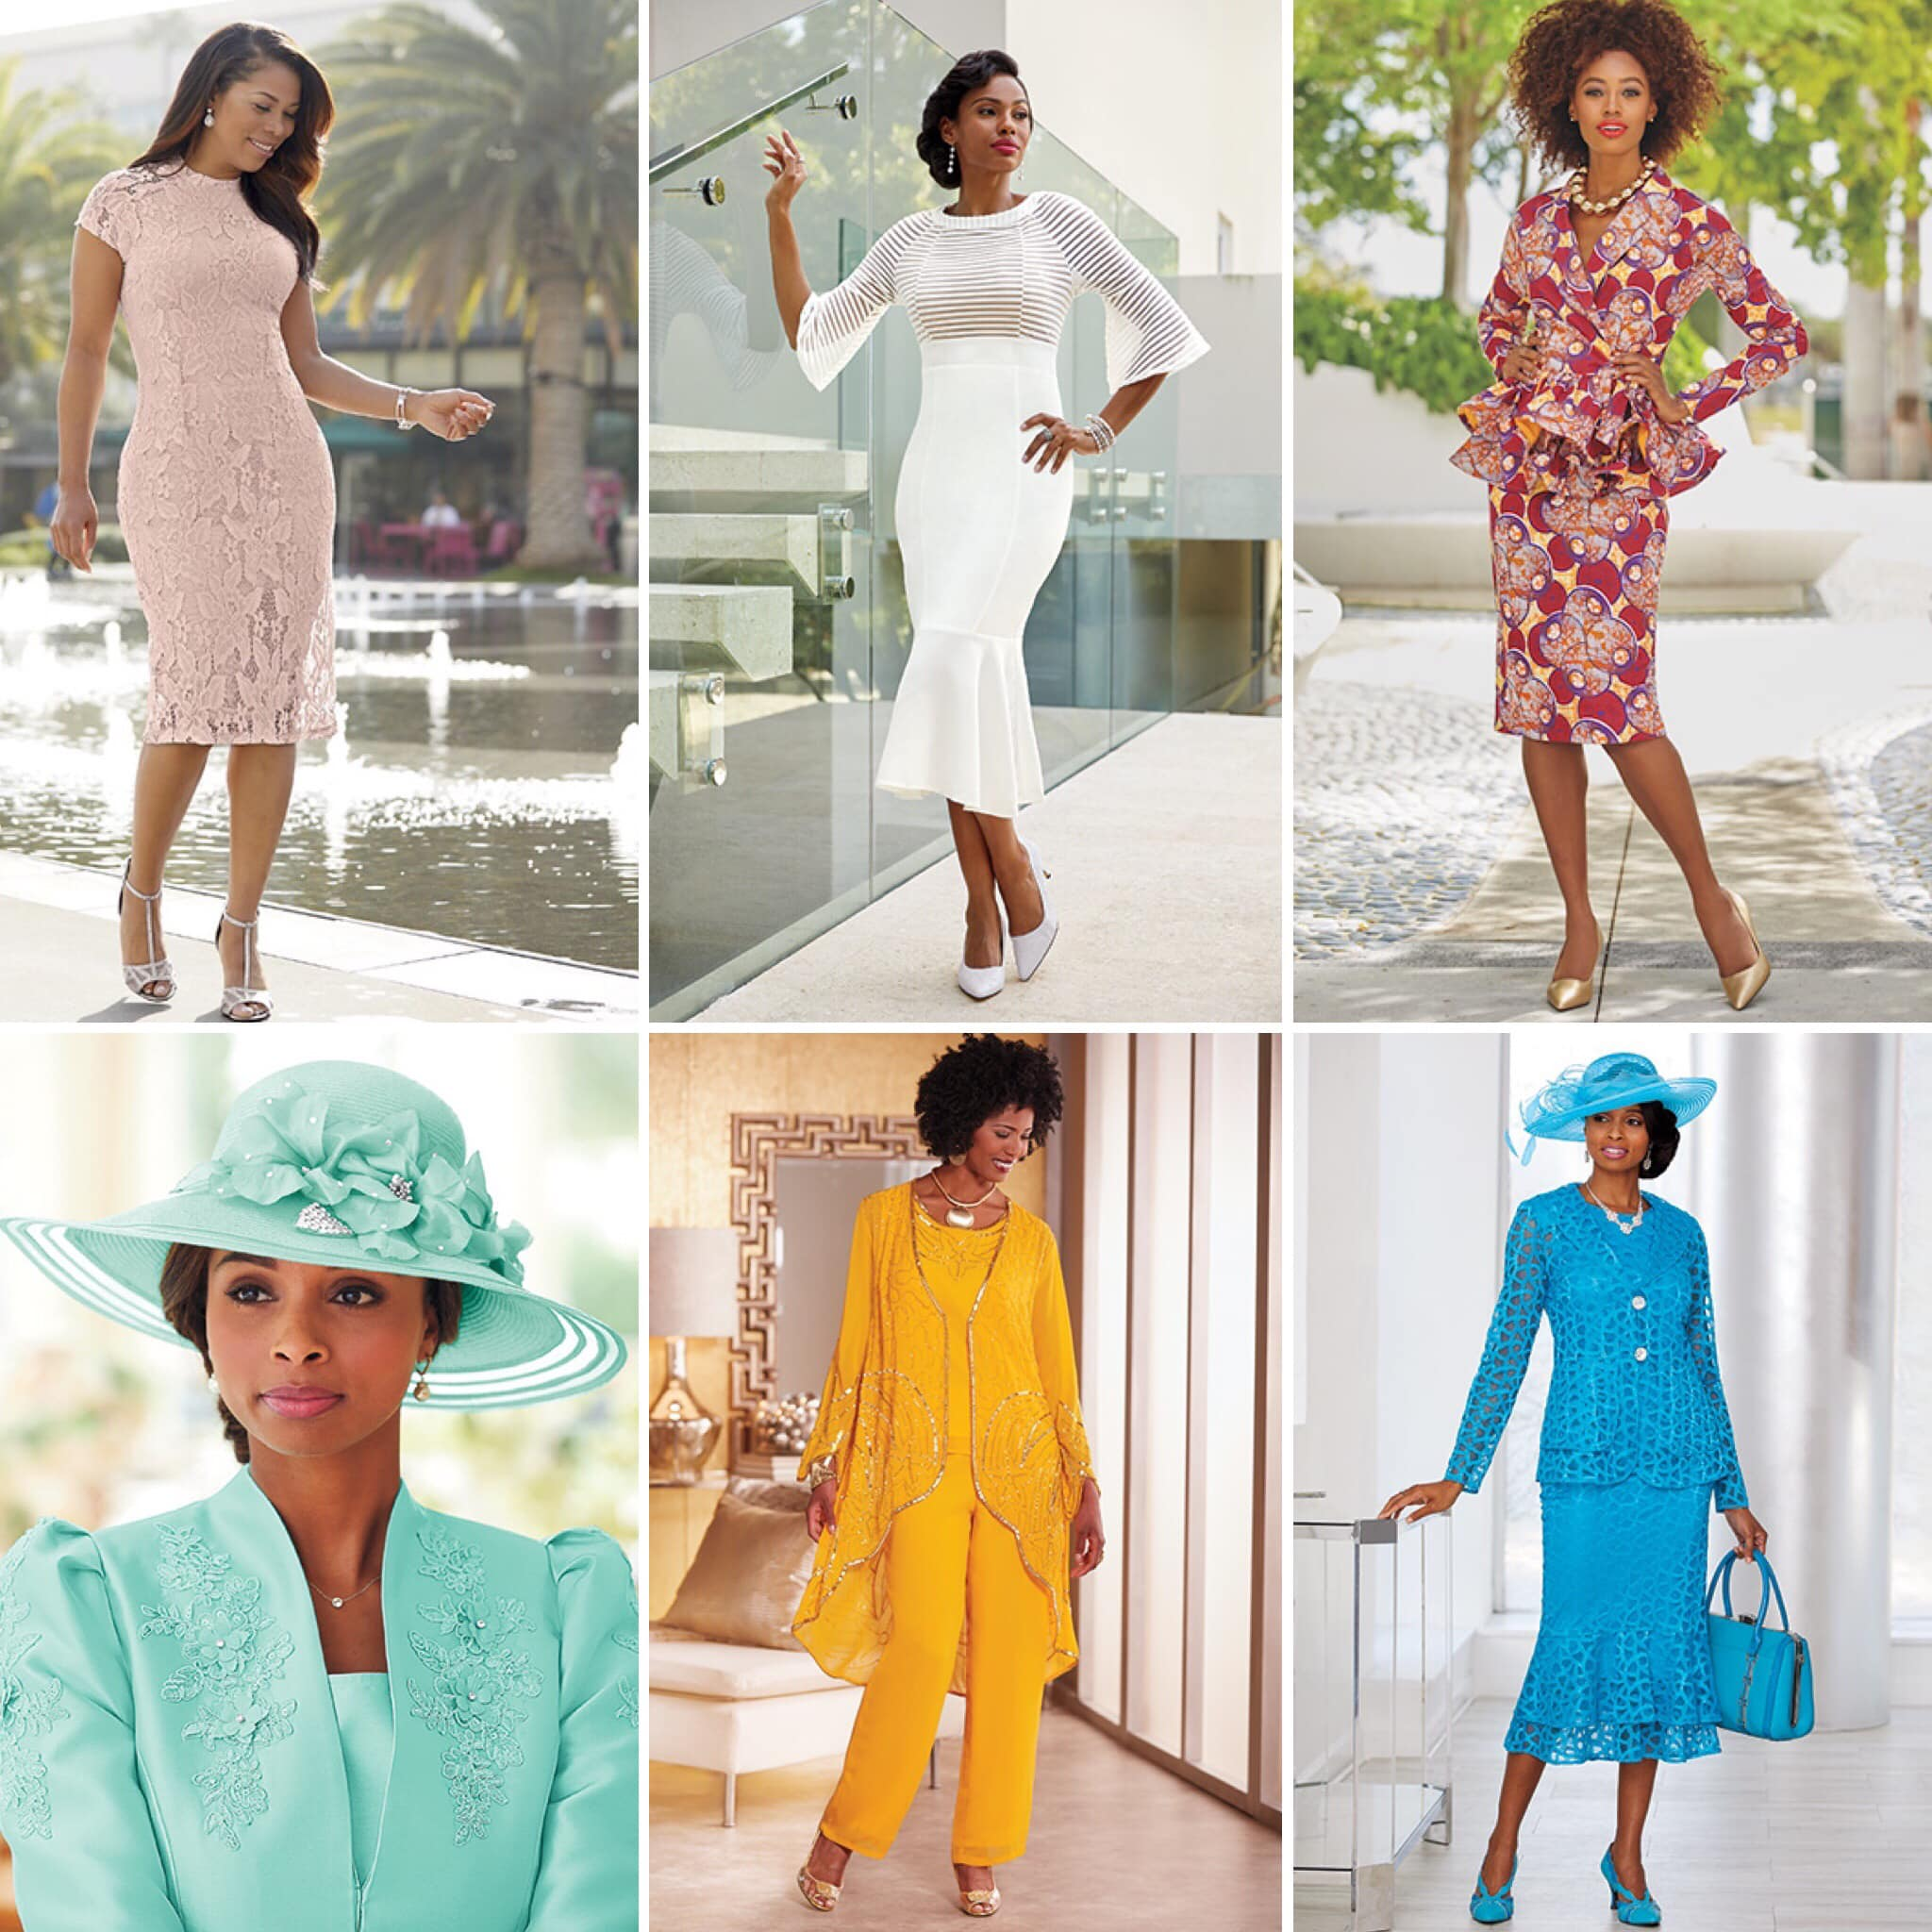 Select Your Stunning Outfit for Mother's Day with My Ashro